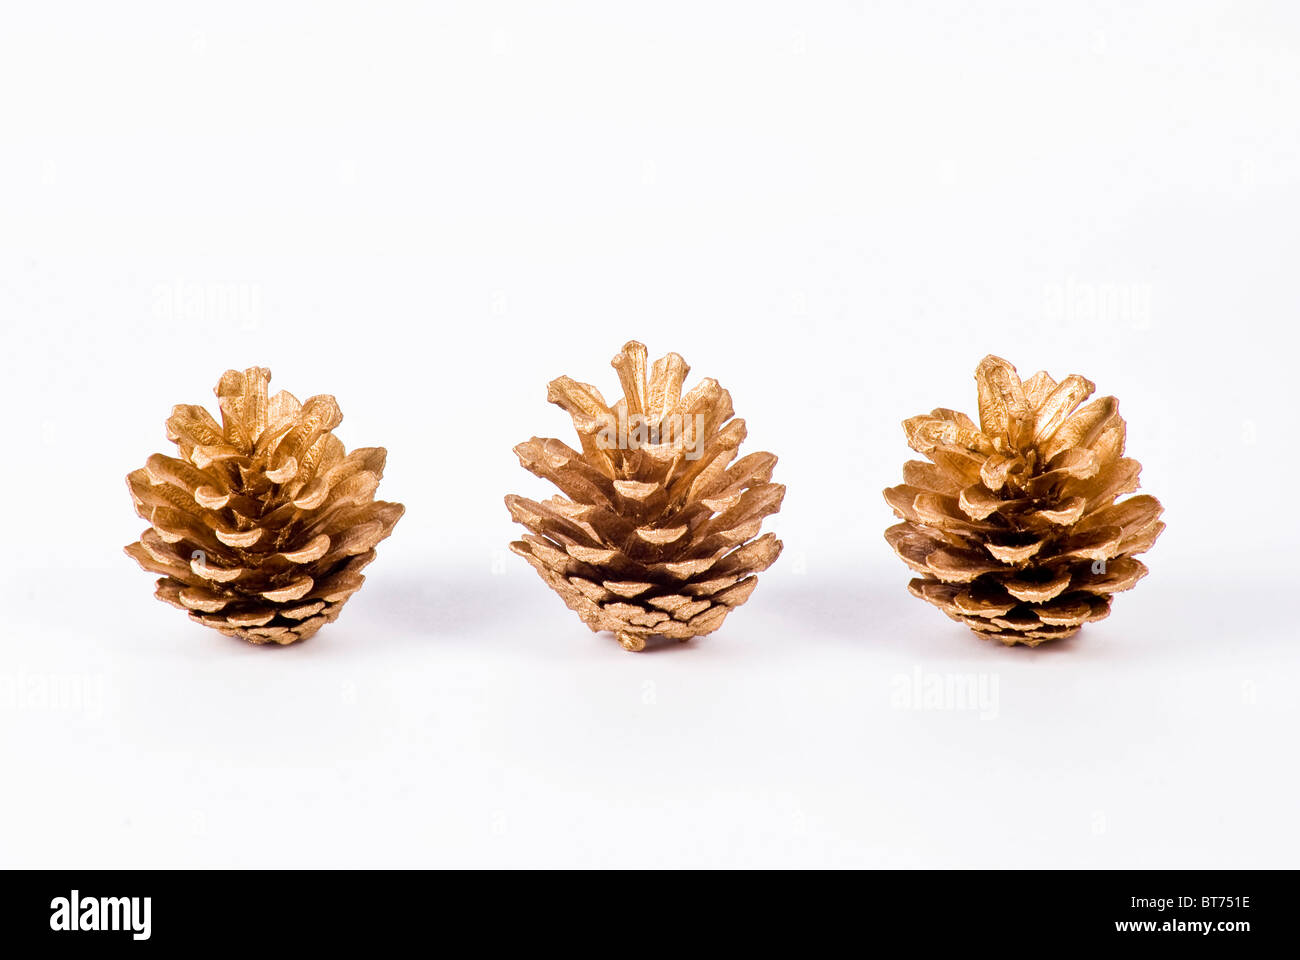 Christmas decoration of pine cones on white background - Stock Image